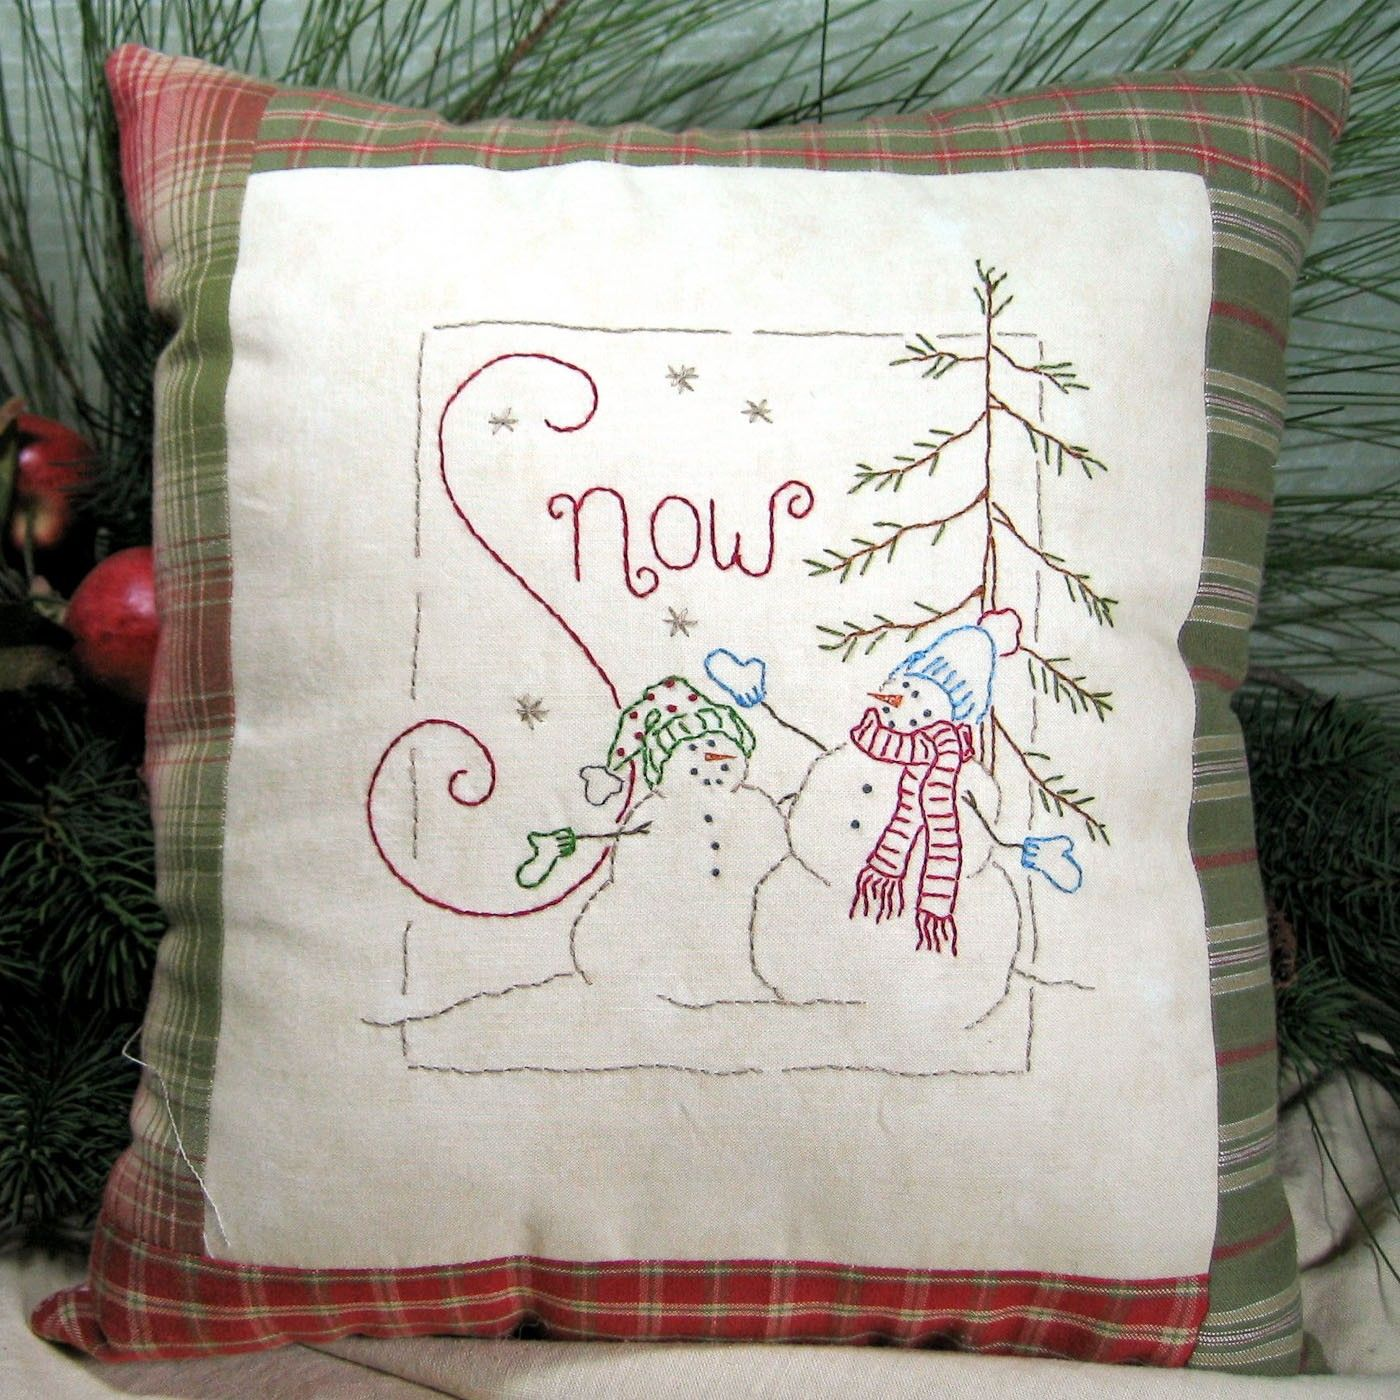 Simple joys of winter winter christmas patterns crabapple hand embroidery pattern snow crabapple hill studio bankloansurffo Gallery